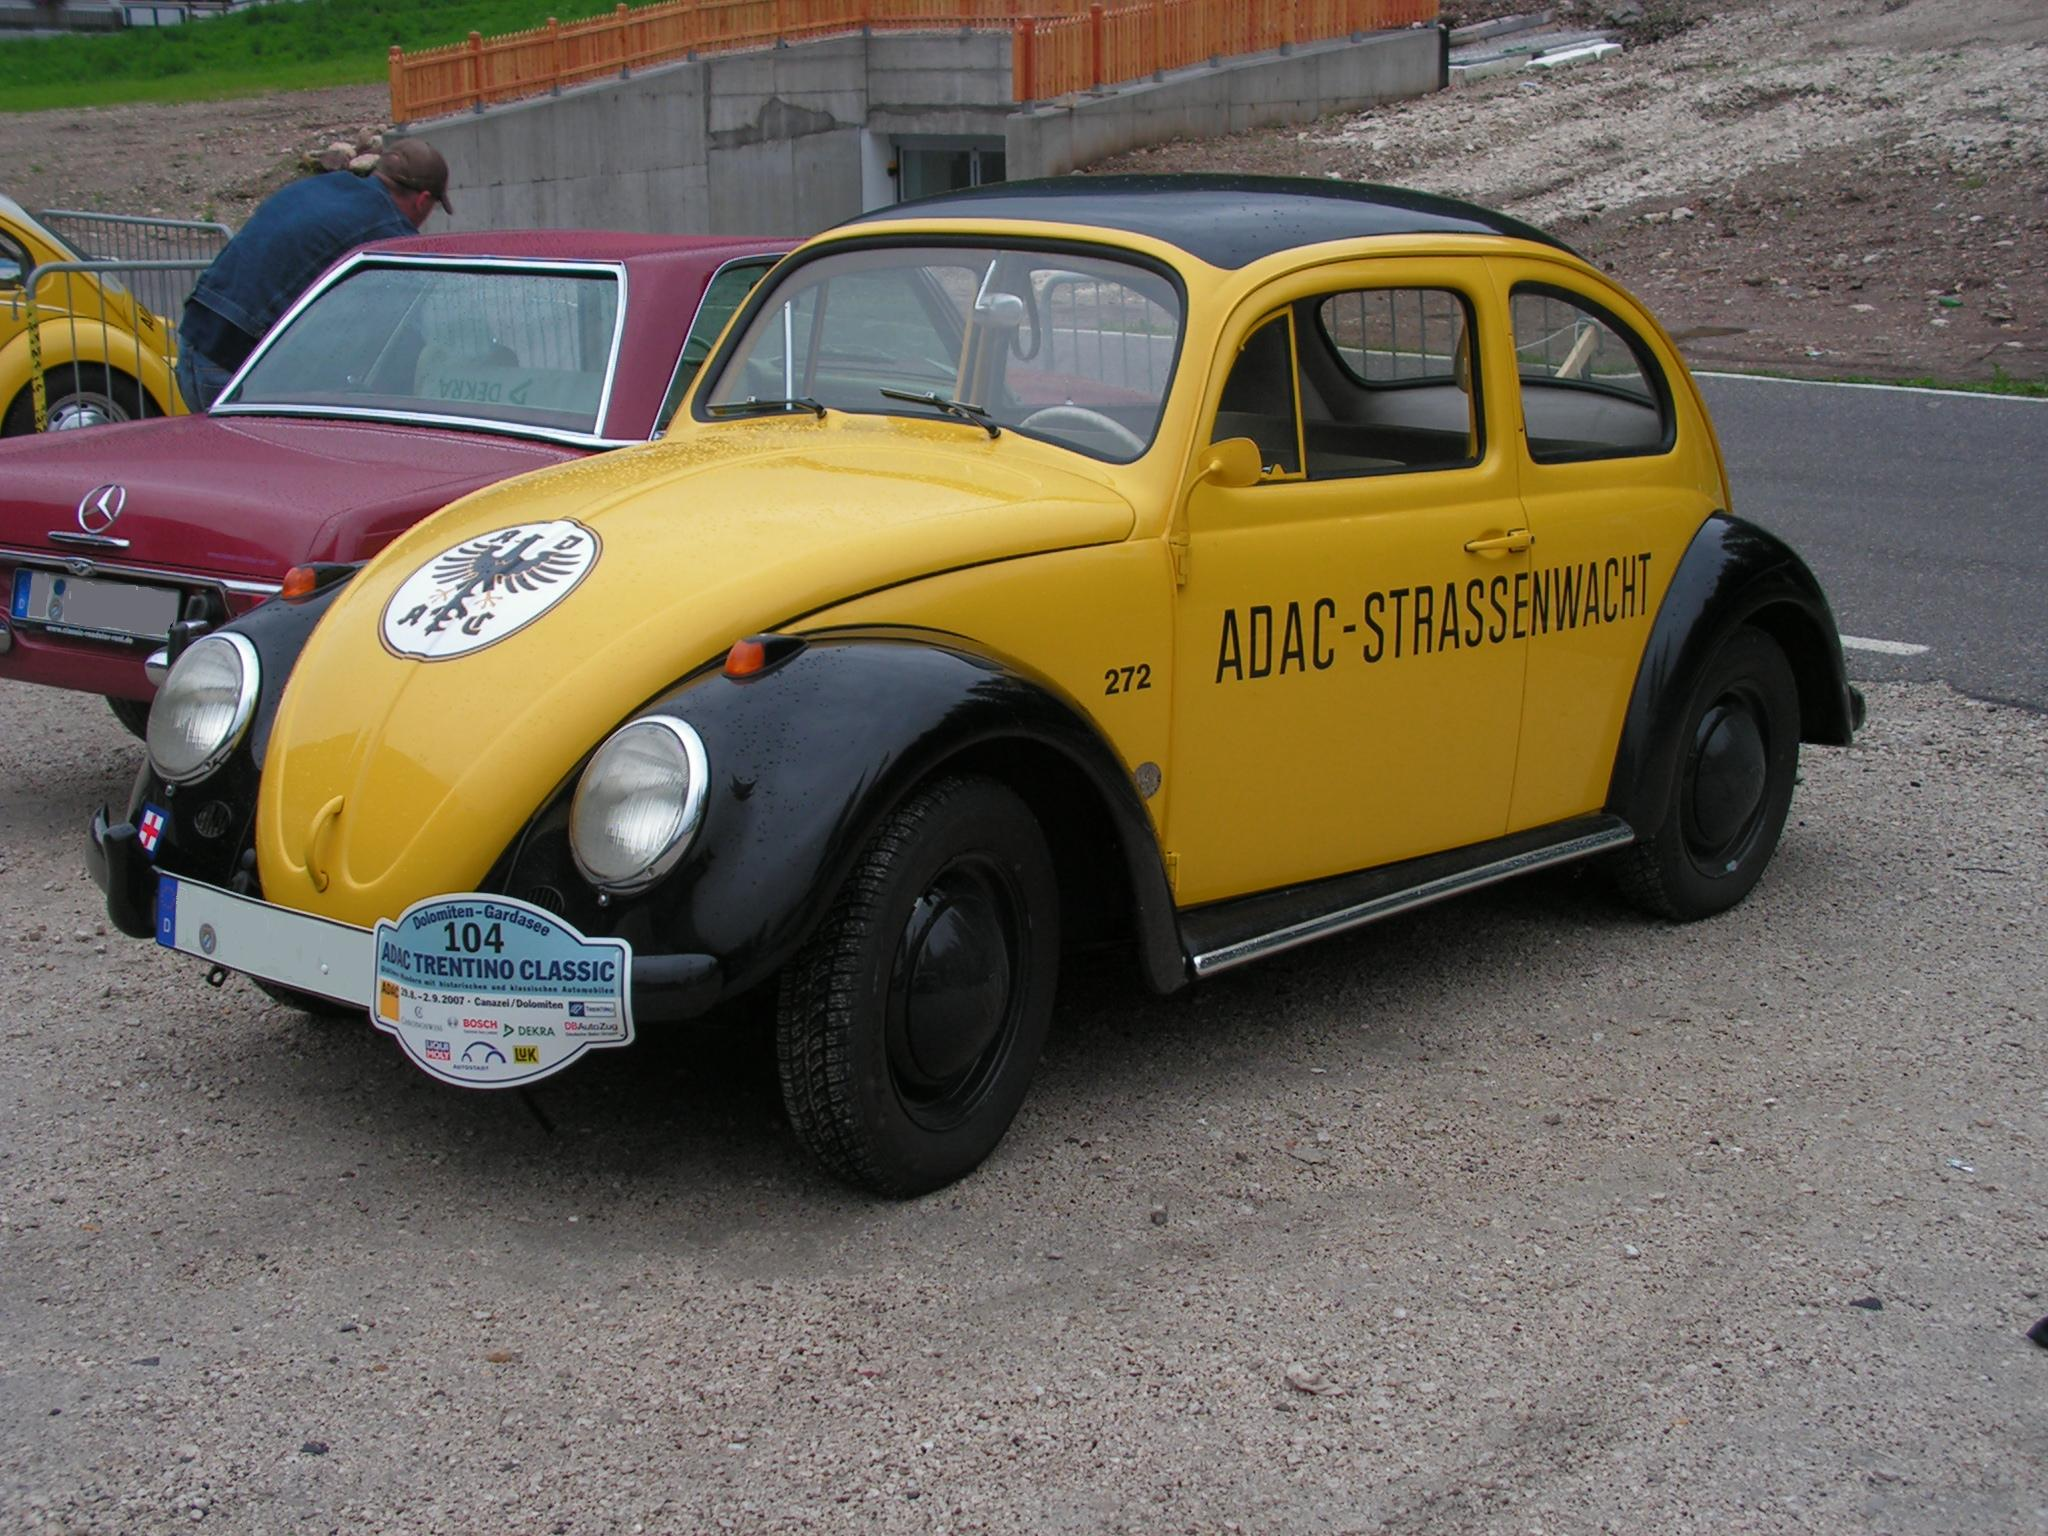 Volkswagen adac photo - 3